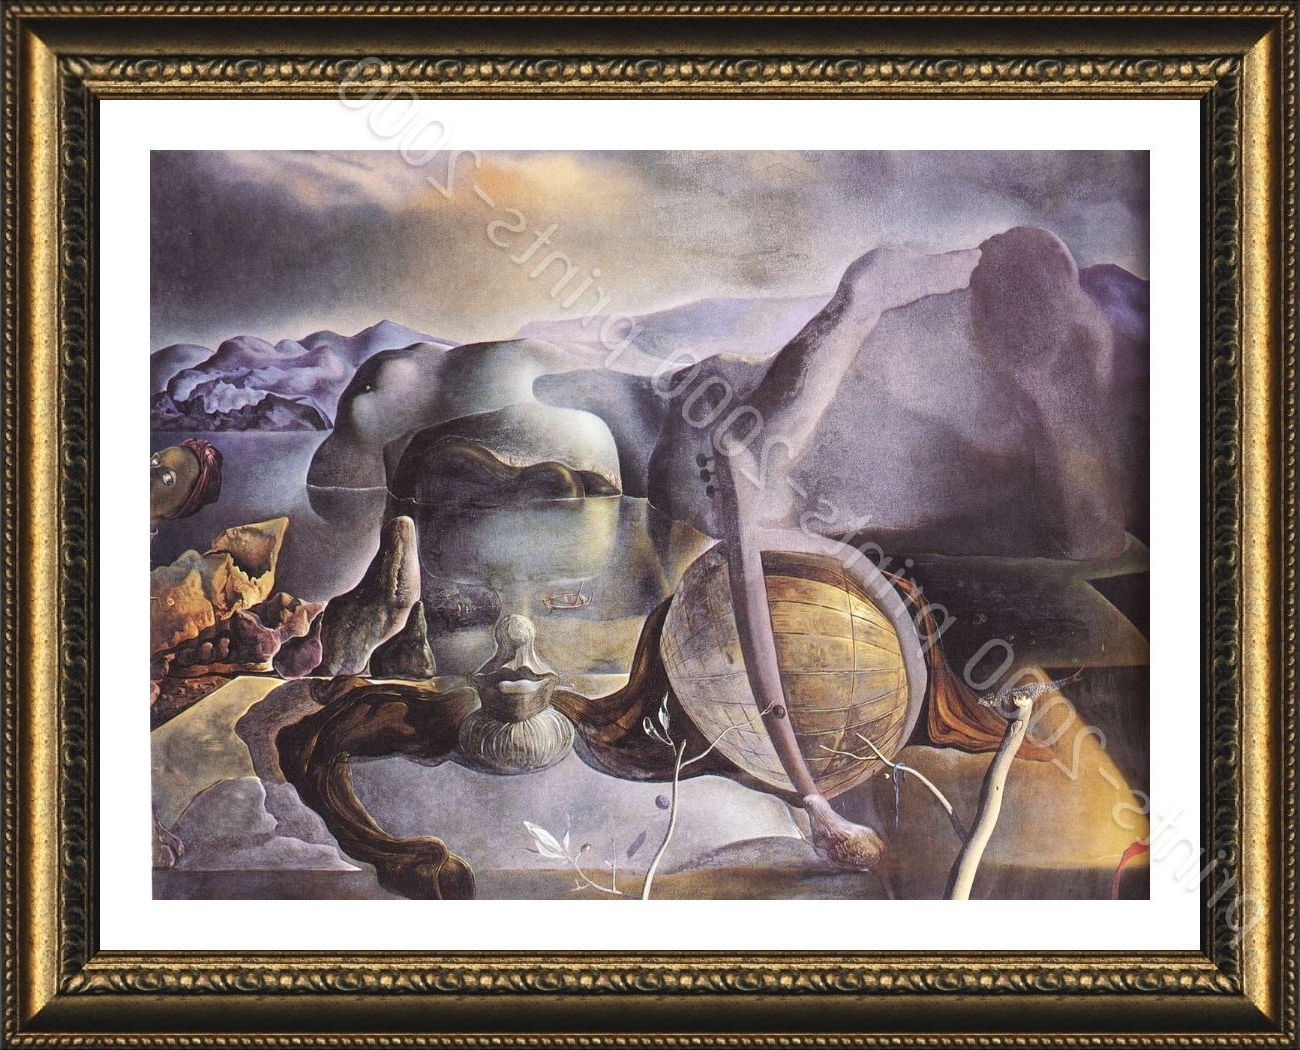 Famous Framed Poster The Endless Enigma Face Salvador Dali Wall Art Inside Salvador Dali Wall Art (View 3 of 15)